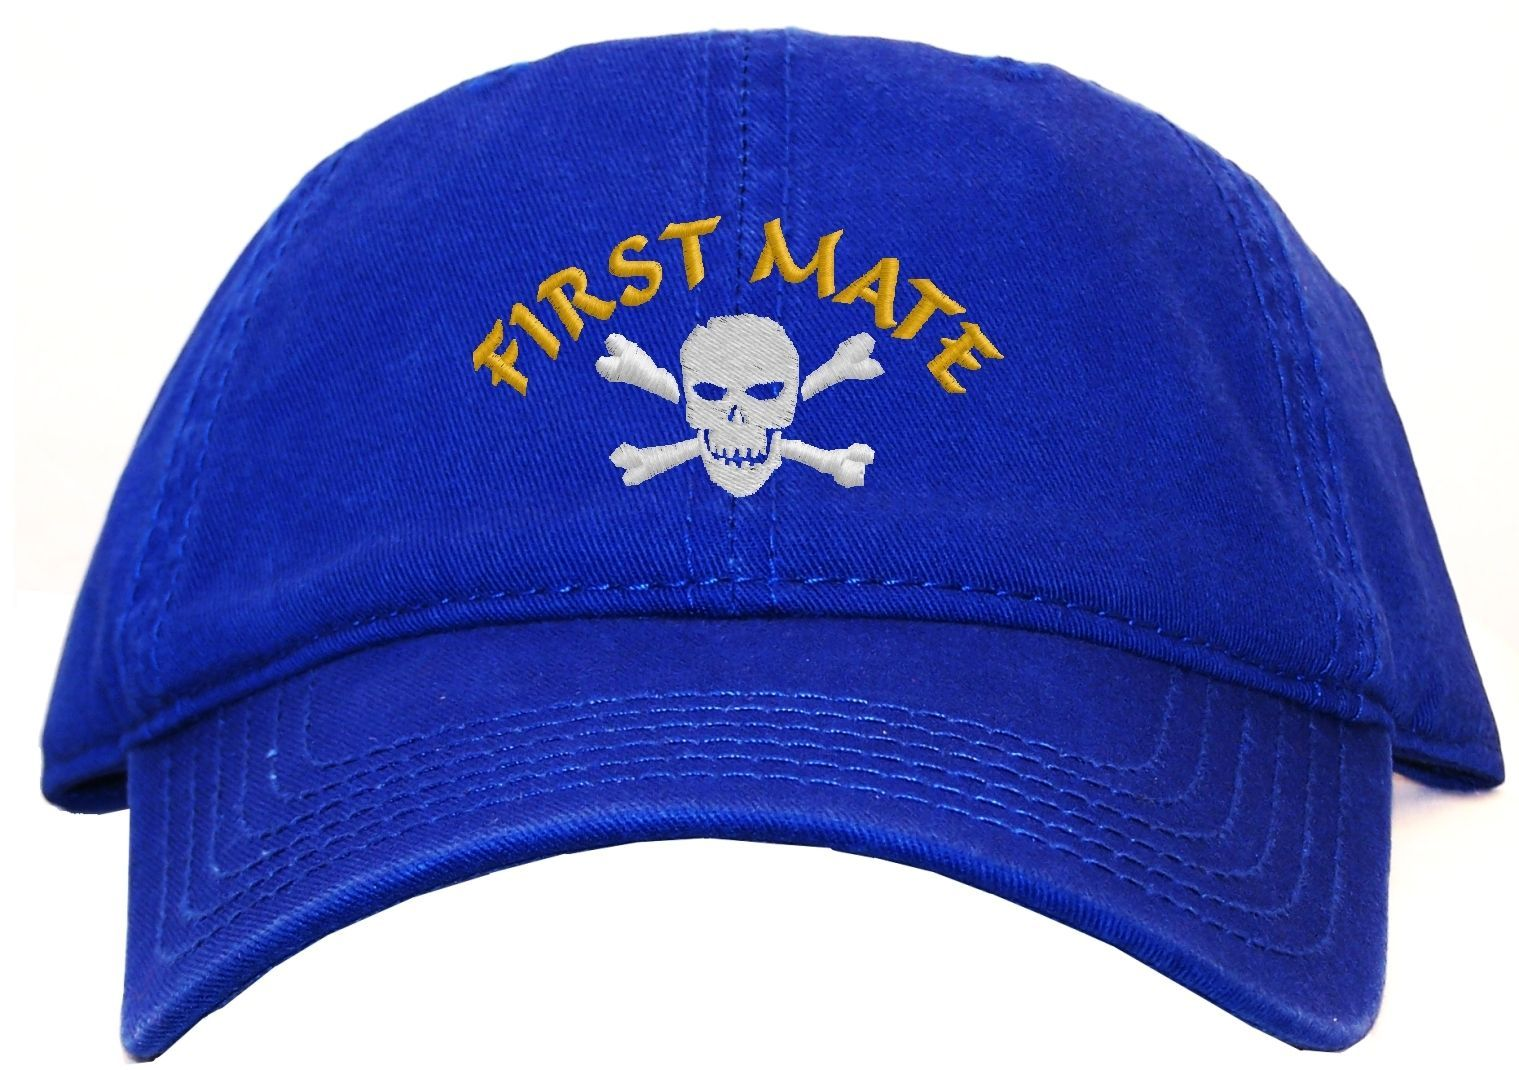 Pirate First Mate Embroidered Low Profile Ball Cap - Available 7 Colors - hat